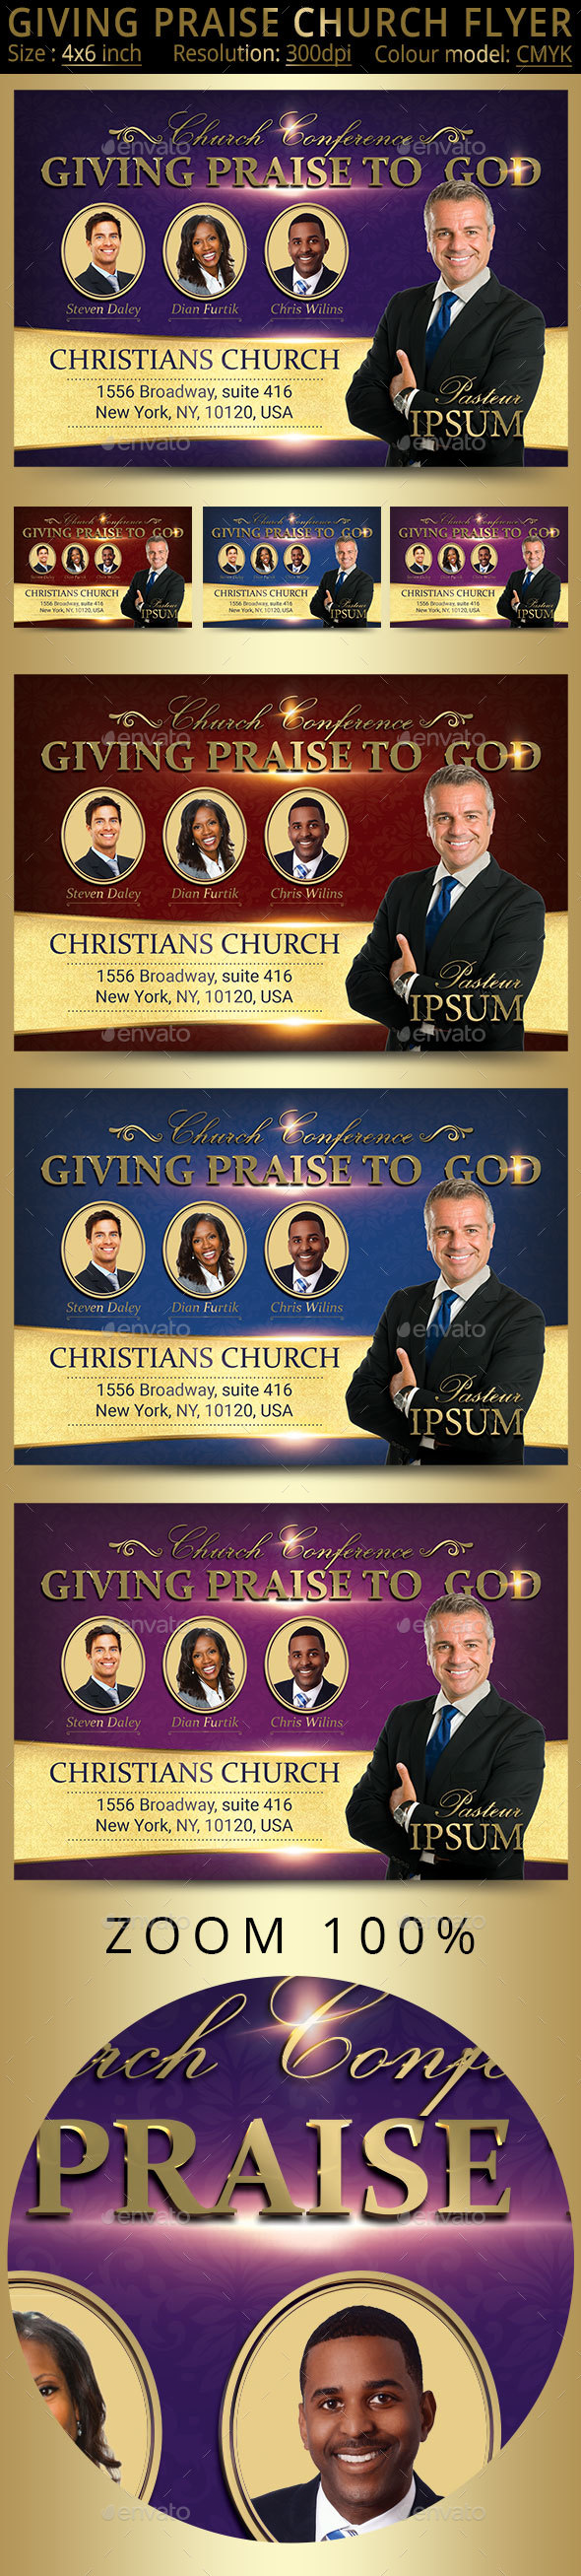 GraphicRiver Giving Praise Church Flyer 20438061